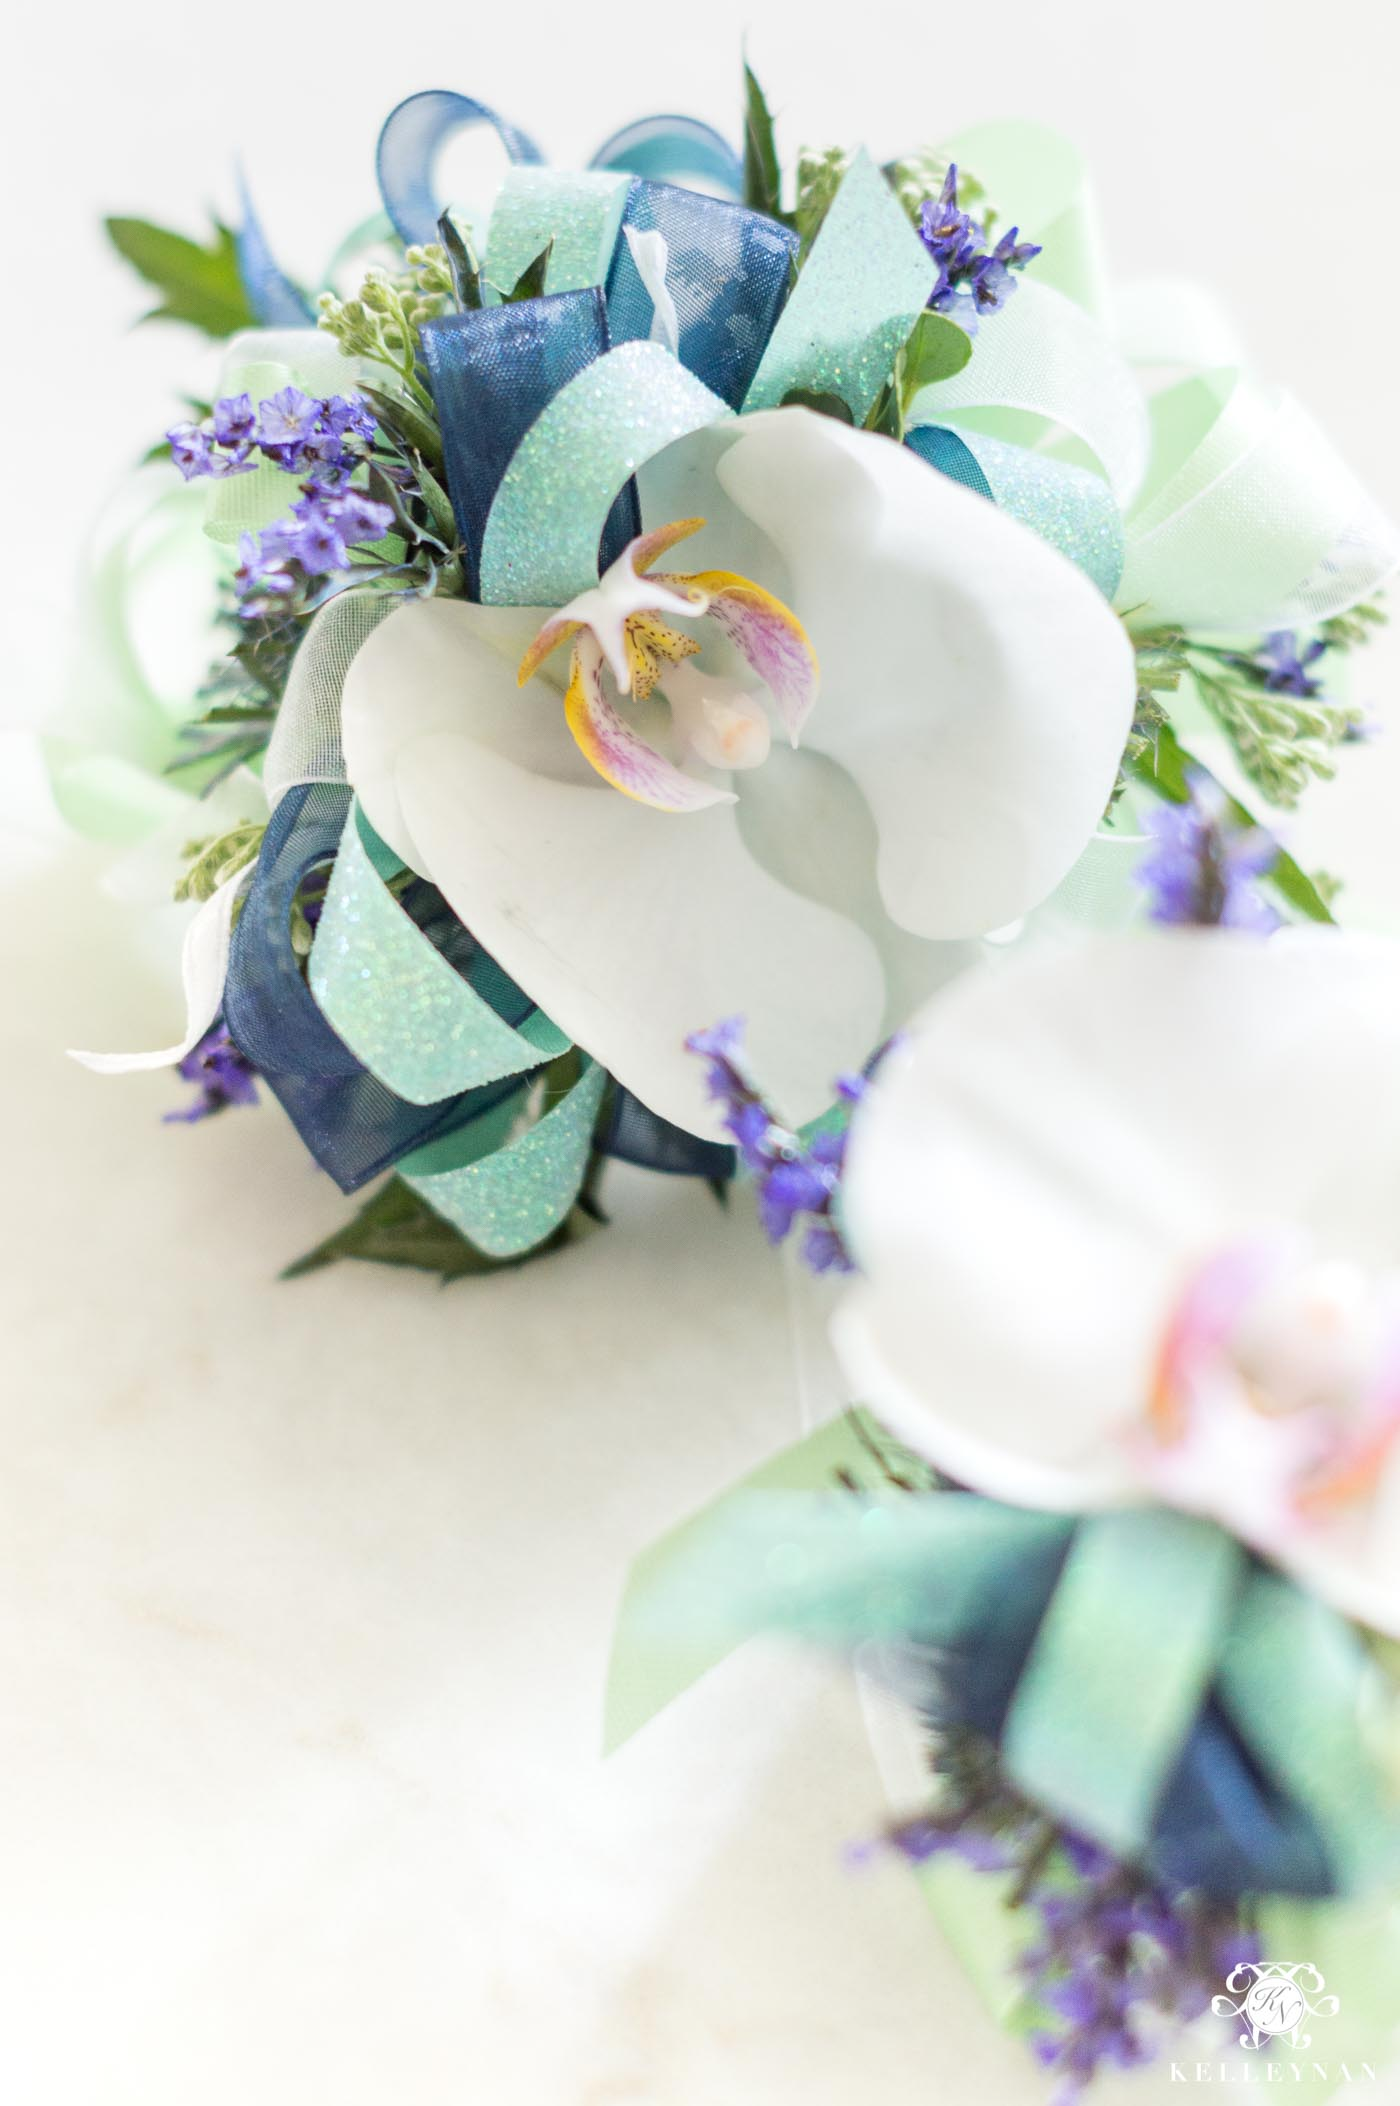 Orchid Corsages for Mom and Sister at Baby Shower